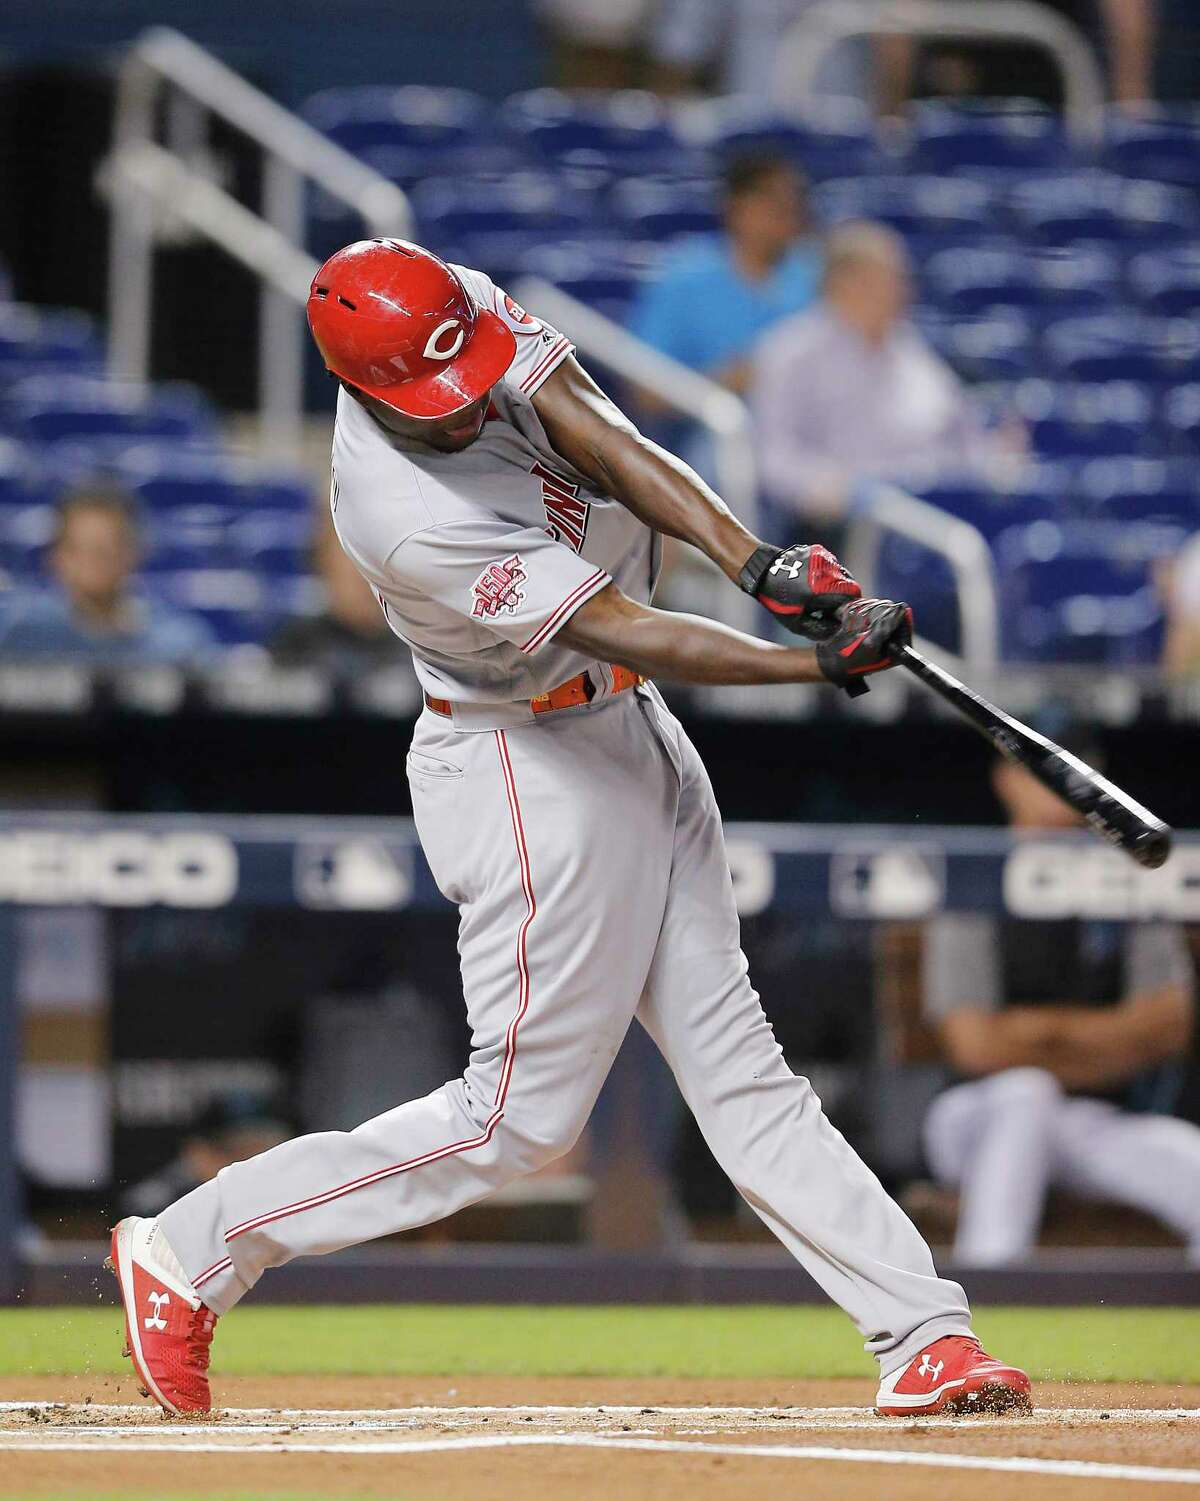 MIAMI, FLORIDA - AUGUST 29: Aristides Aquino #44 of the Cincinnati Reds hits a two-run home run against the Miami Marlins during the first inning at Marlins Park on August 29, 2019 in Miami, Florida. (Photo by Michael Reaves/Getty Images)